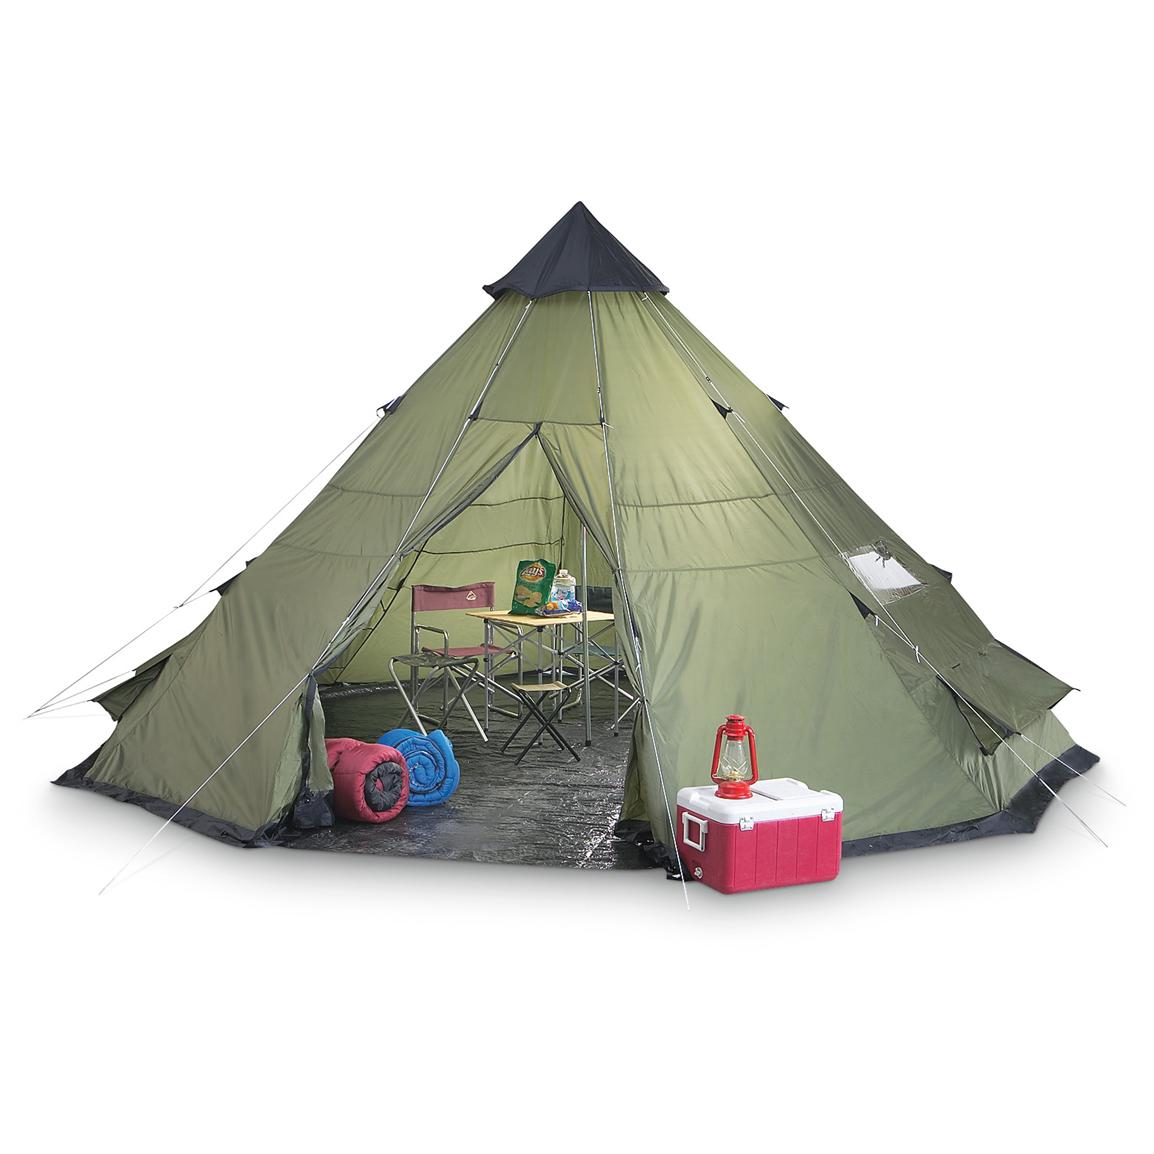 sc 1 st  Tent Buying Guide & Best Teepee Tent For Camping: 3 Teepee Style Tent Reviews